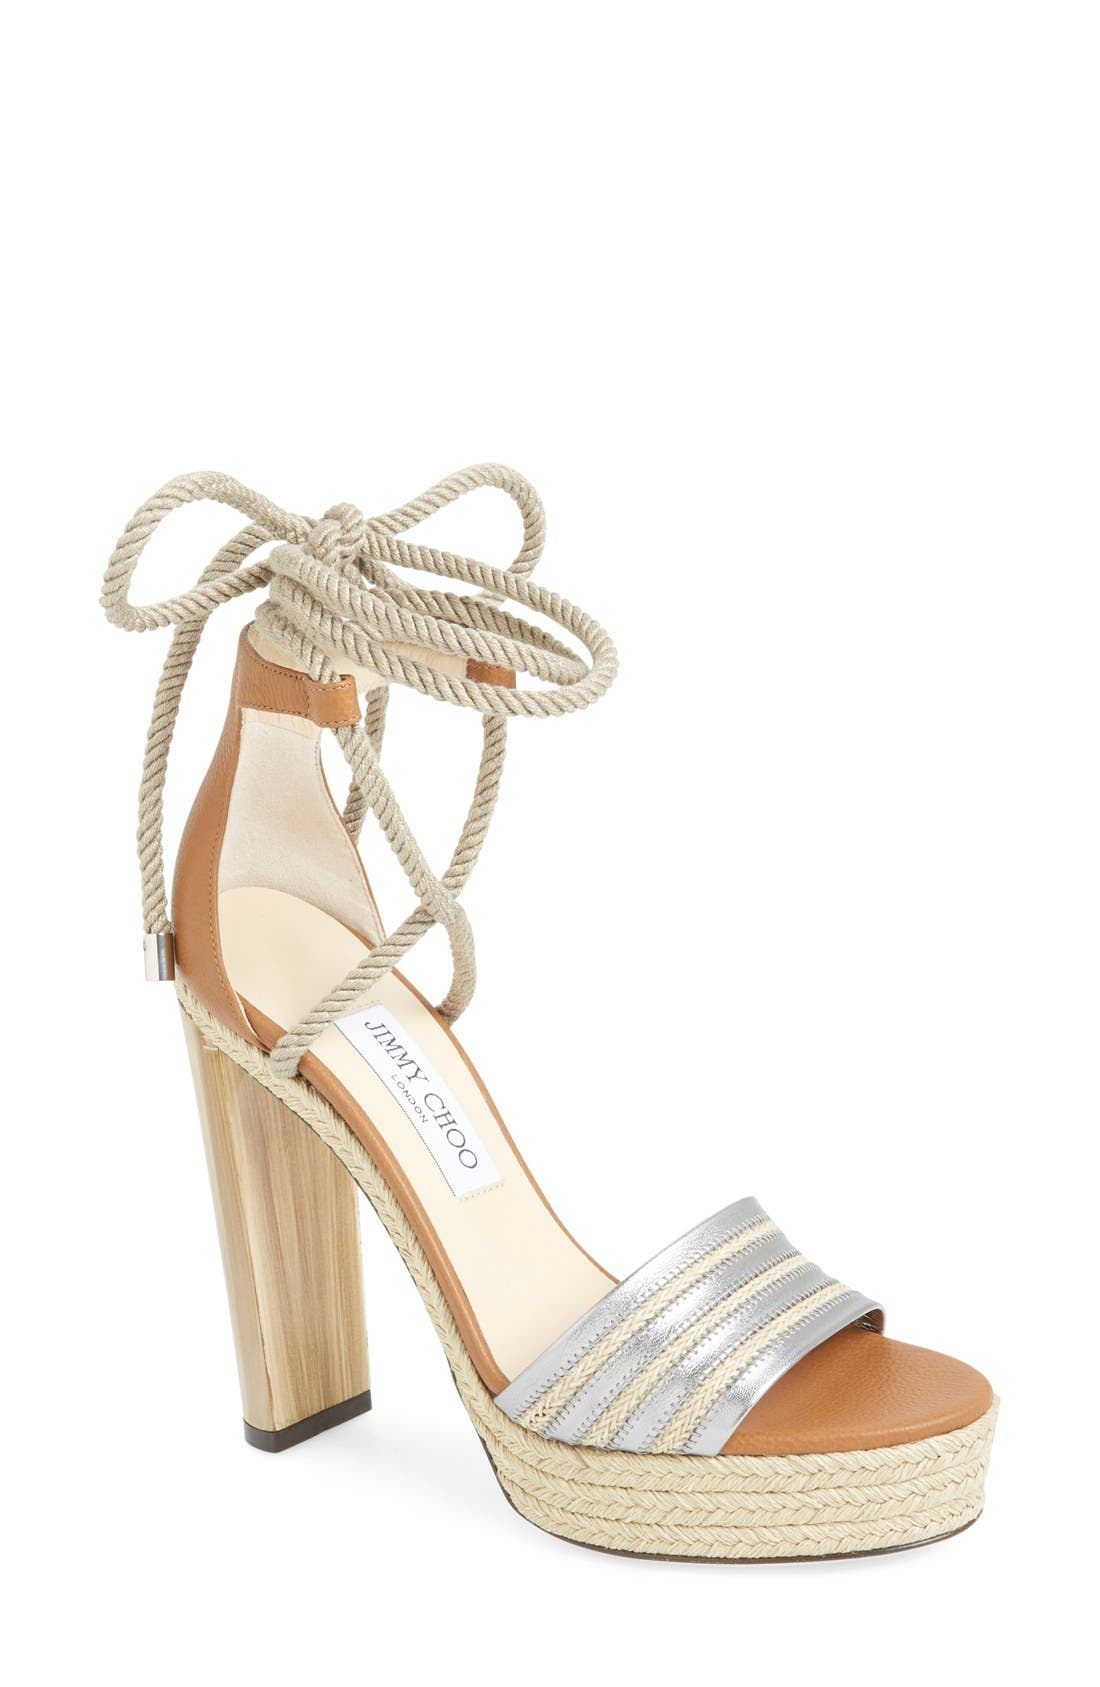 Alternate Image 1 Selected - Jimmy Choo 'Mayje' Platform Sandal (Women)